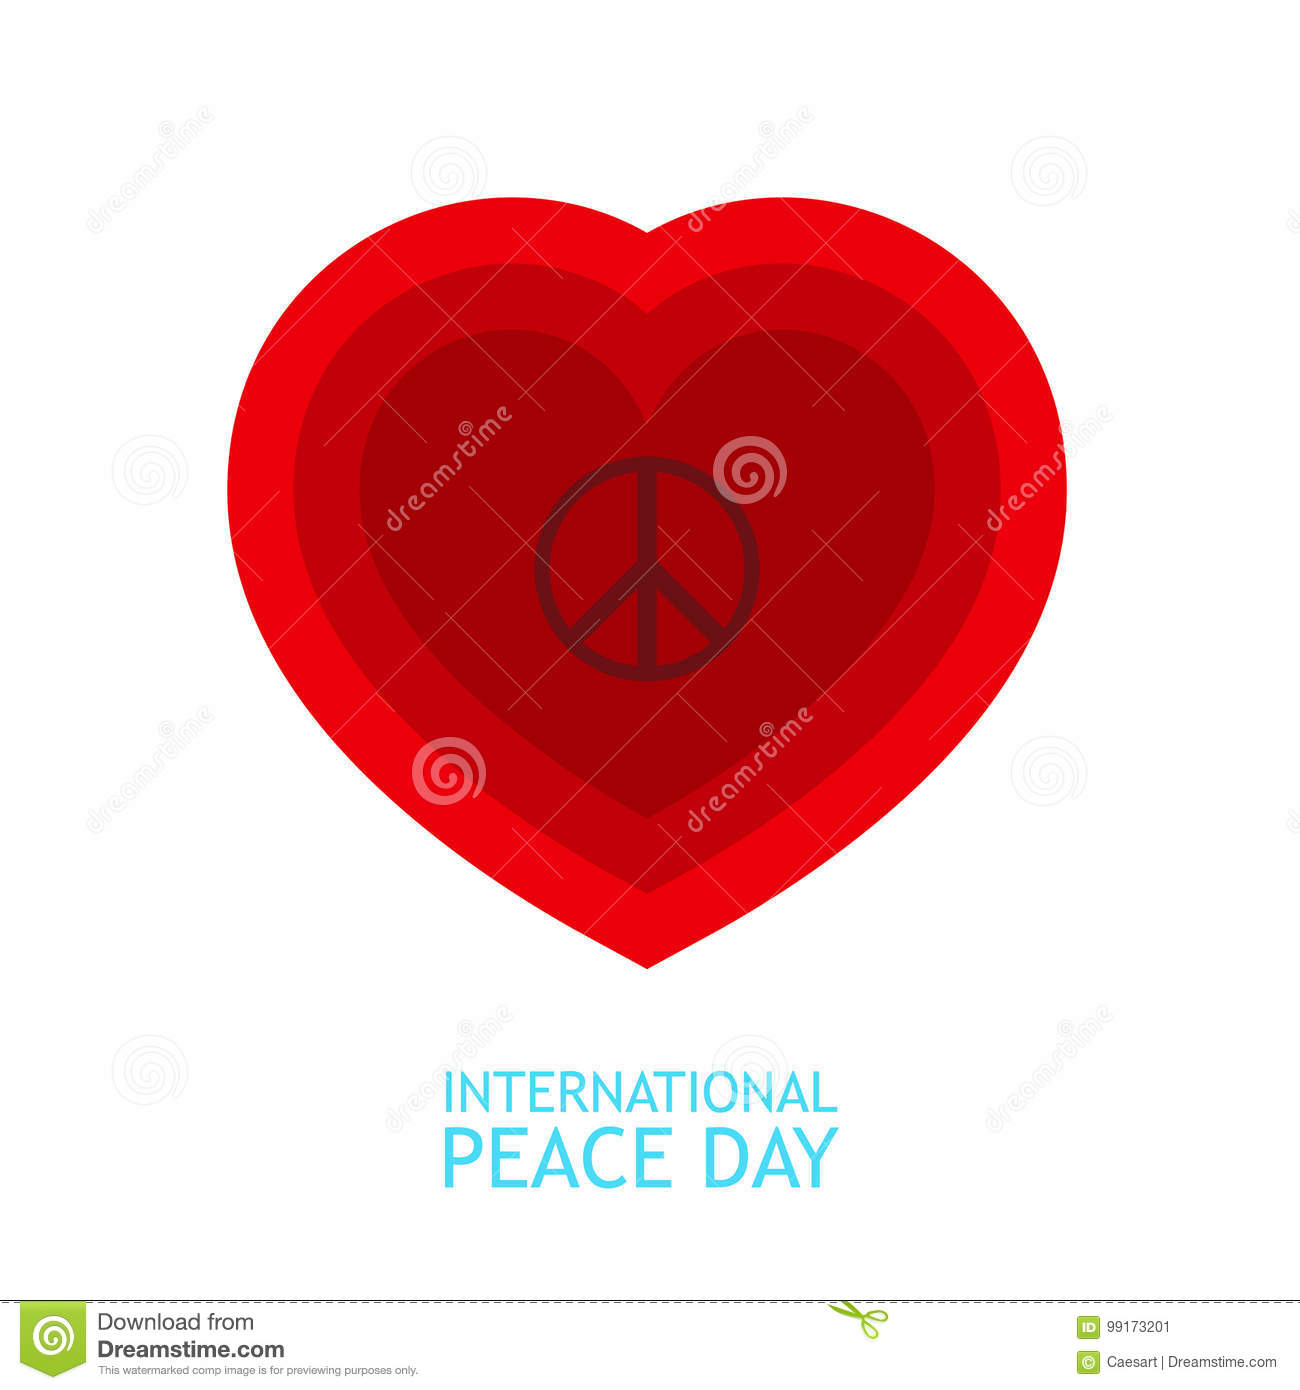 Red Heart And Peace Symbol Inside For Poster Or Background About